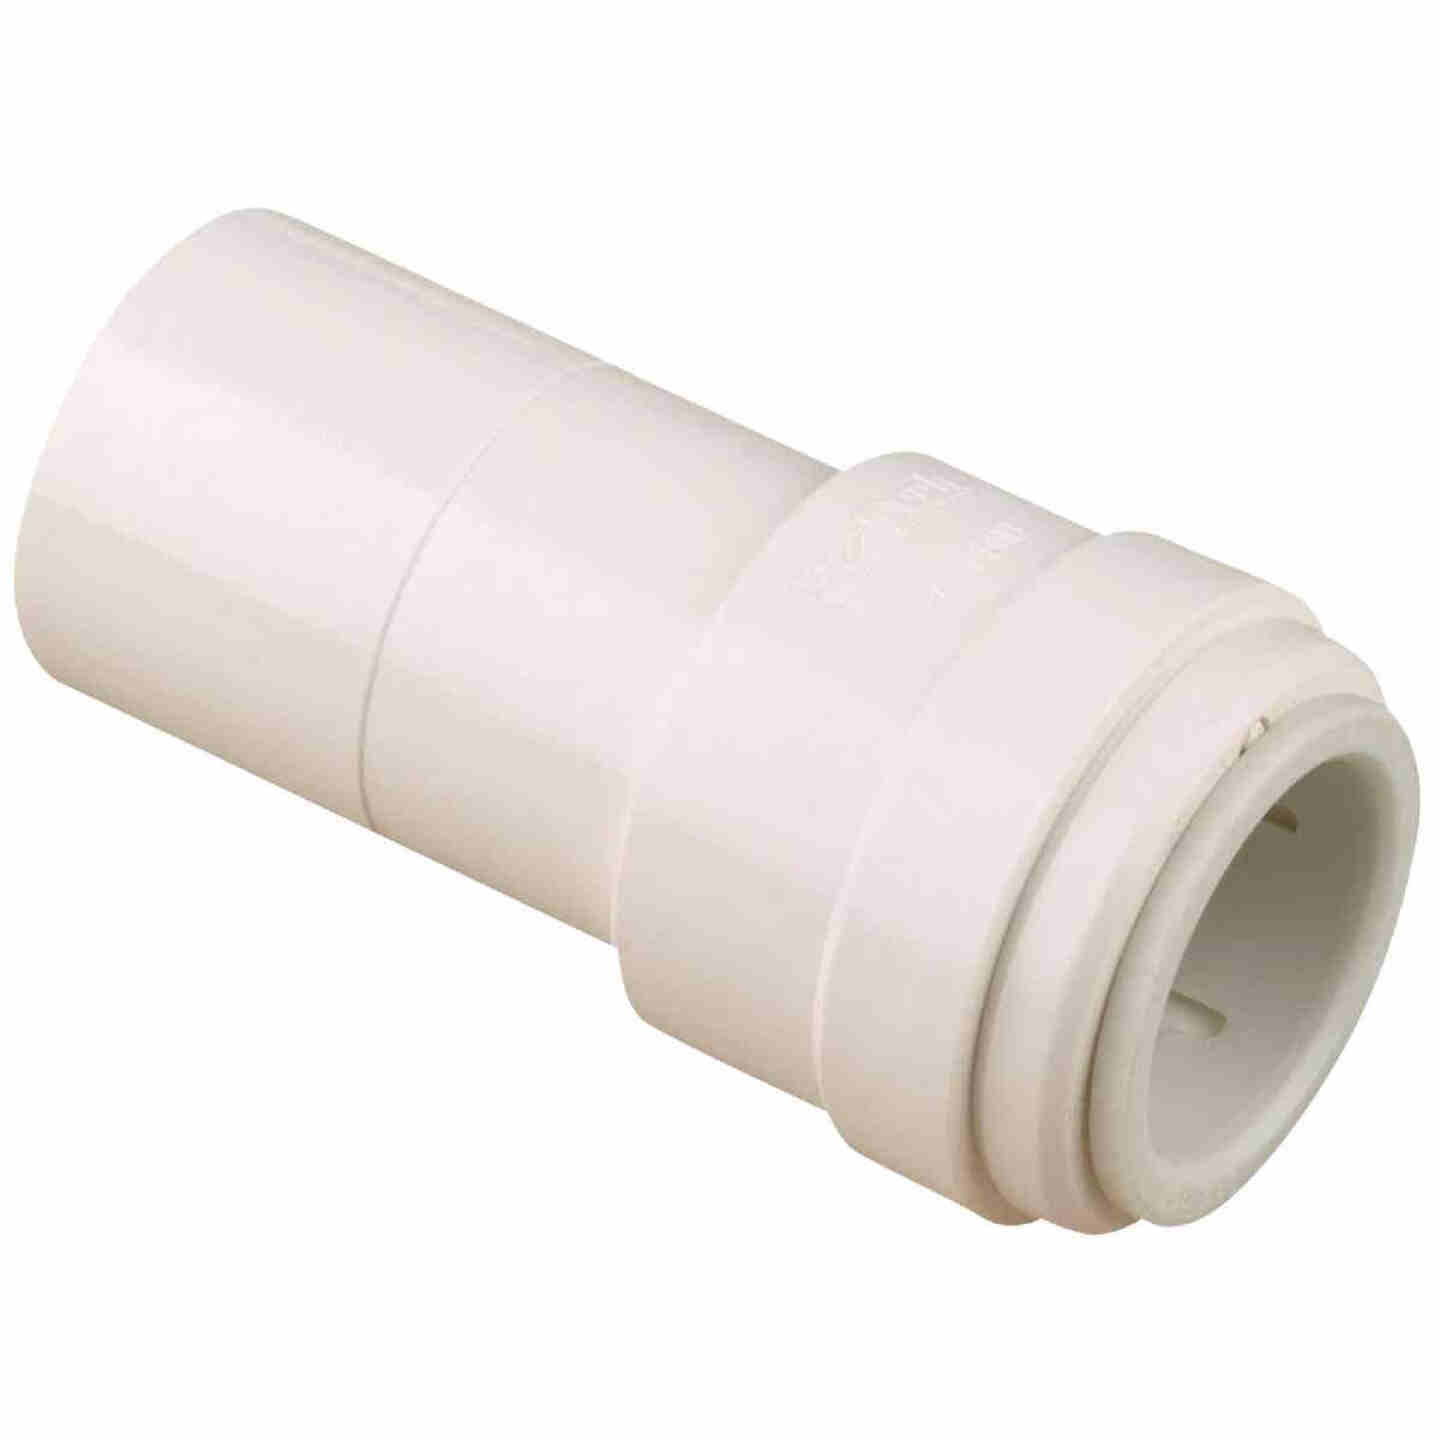 Watts 1/2 In. x 3/8 In. Quick Connect Stackable Plastic Coupling Image 1